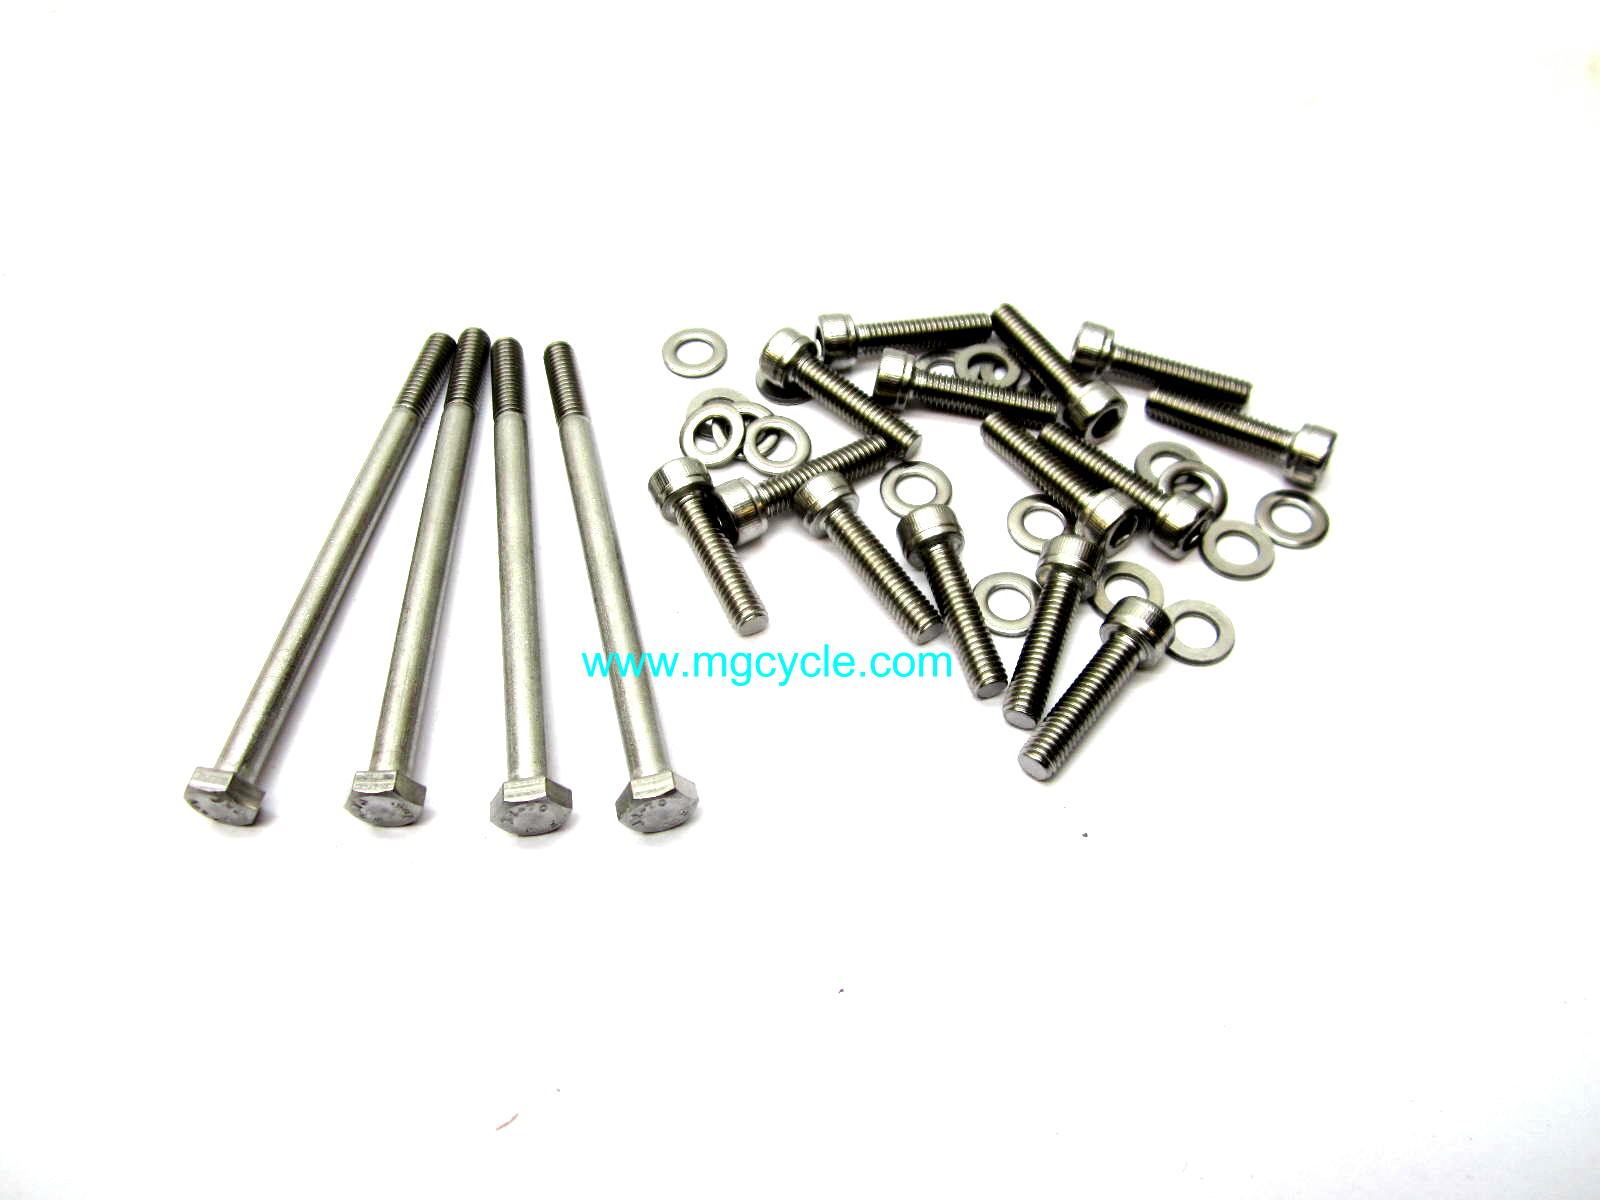 oil pan bolt kit for deep oil pan V11 California series